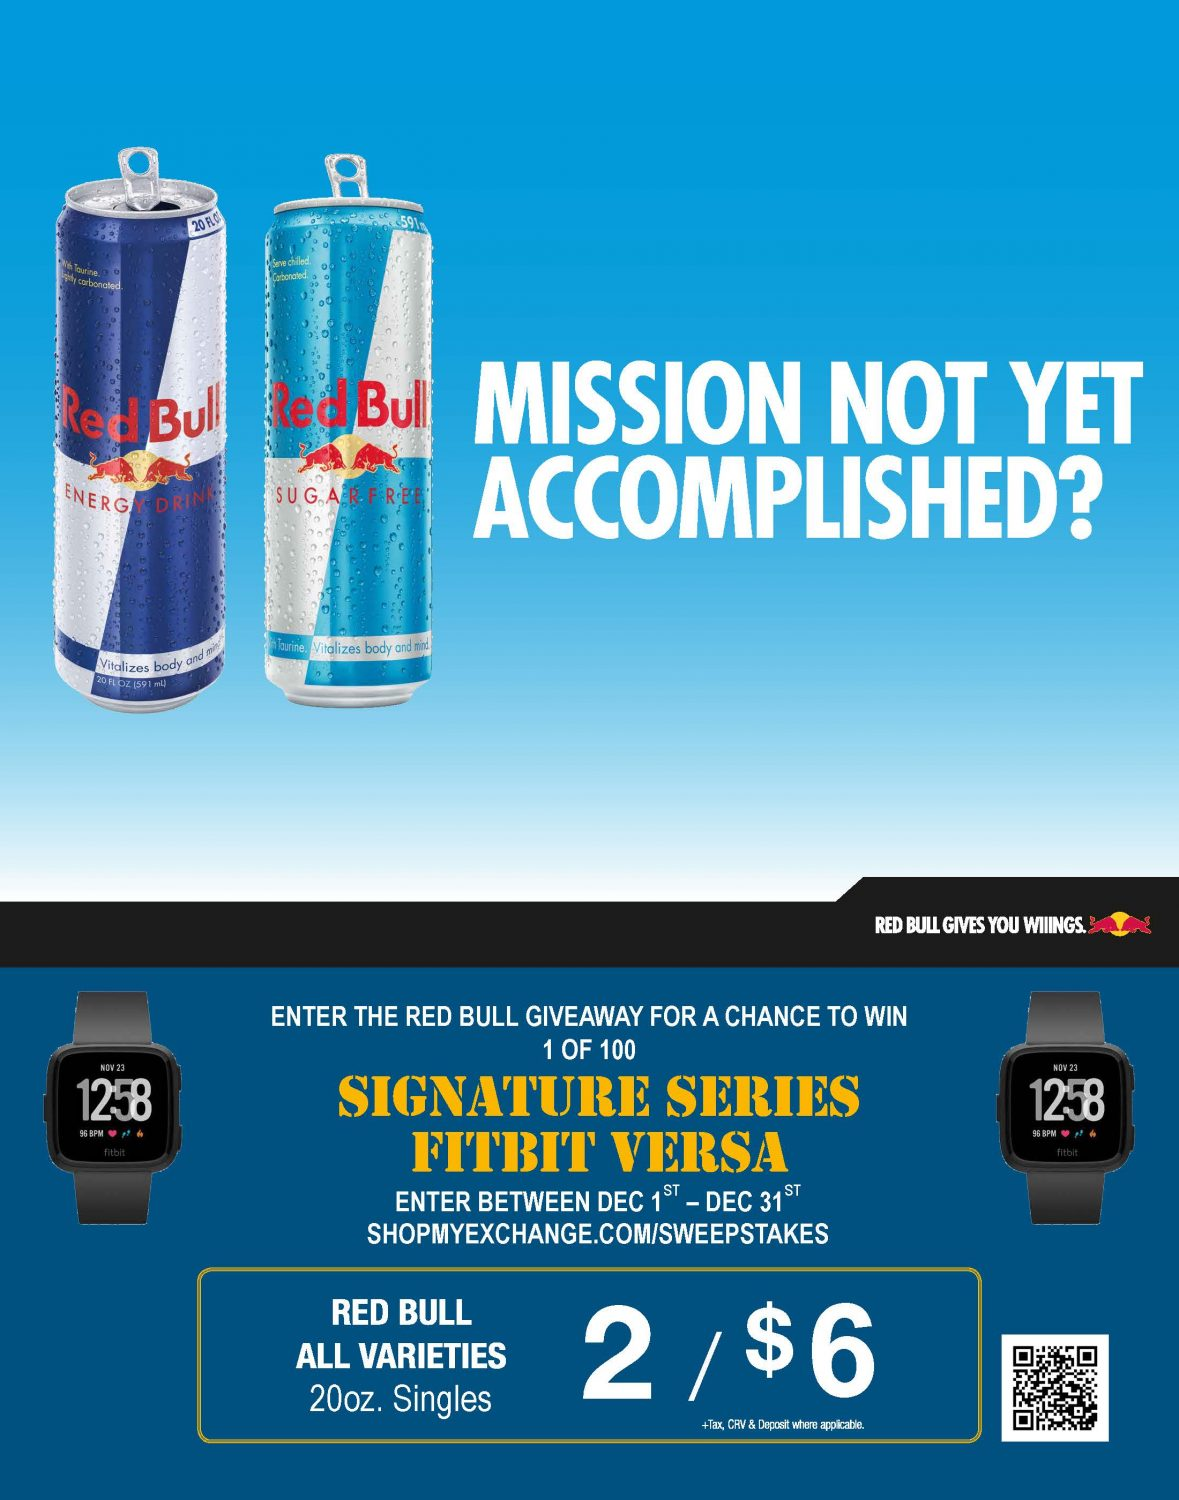 Mission not yet accomplished? - Red Bull giveaway